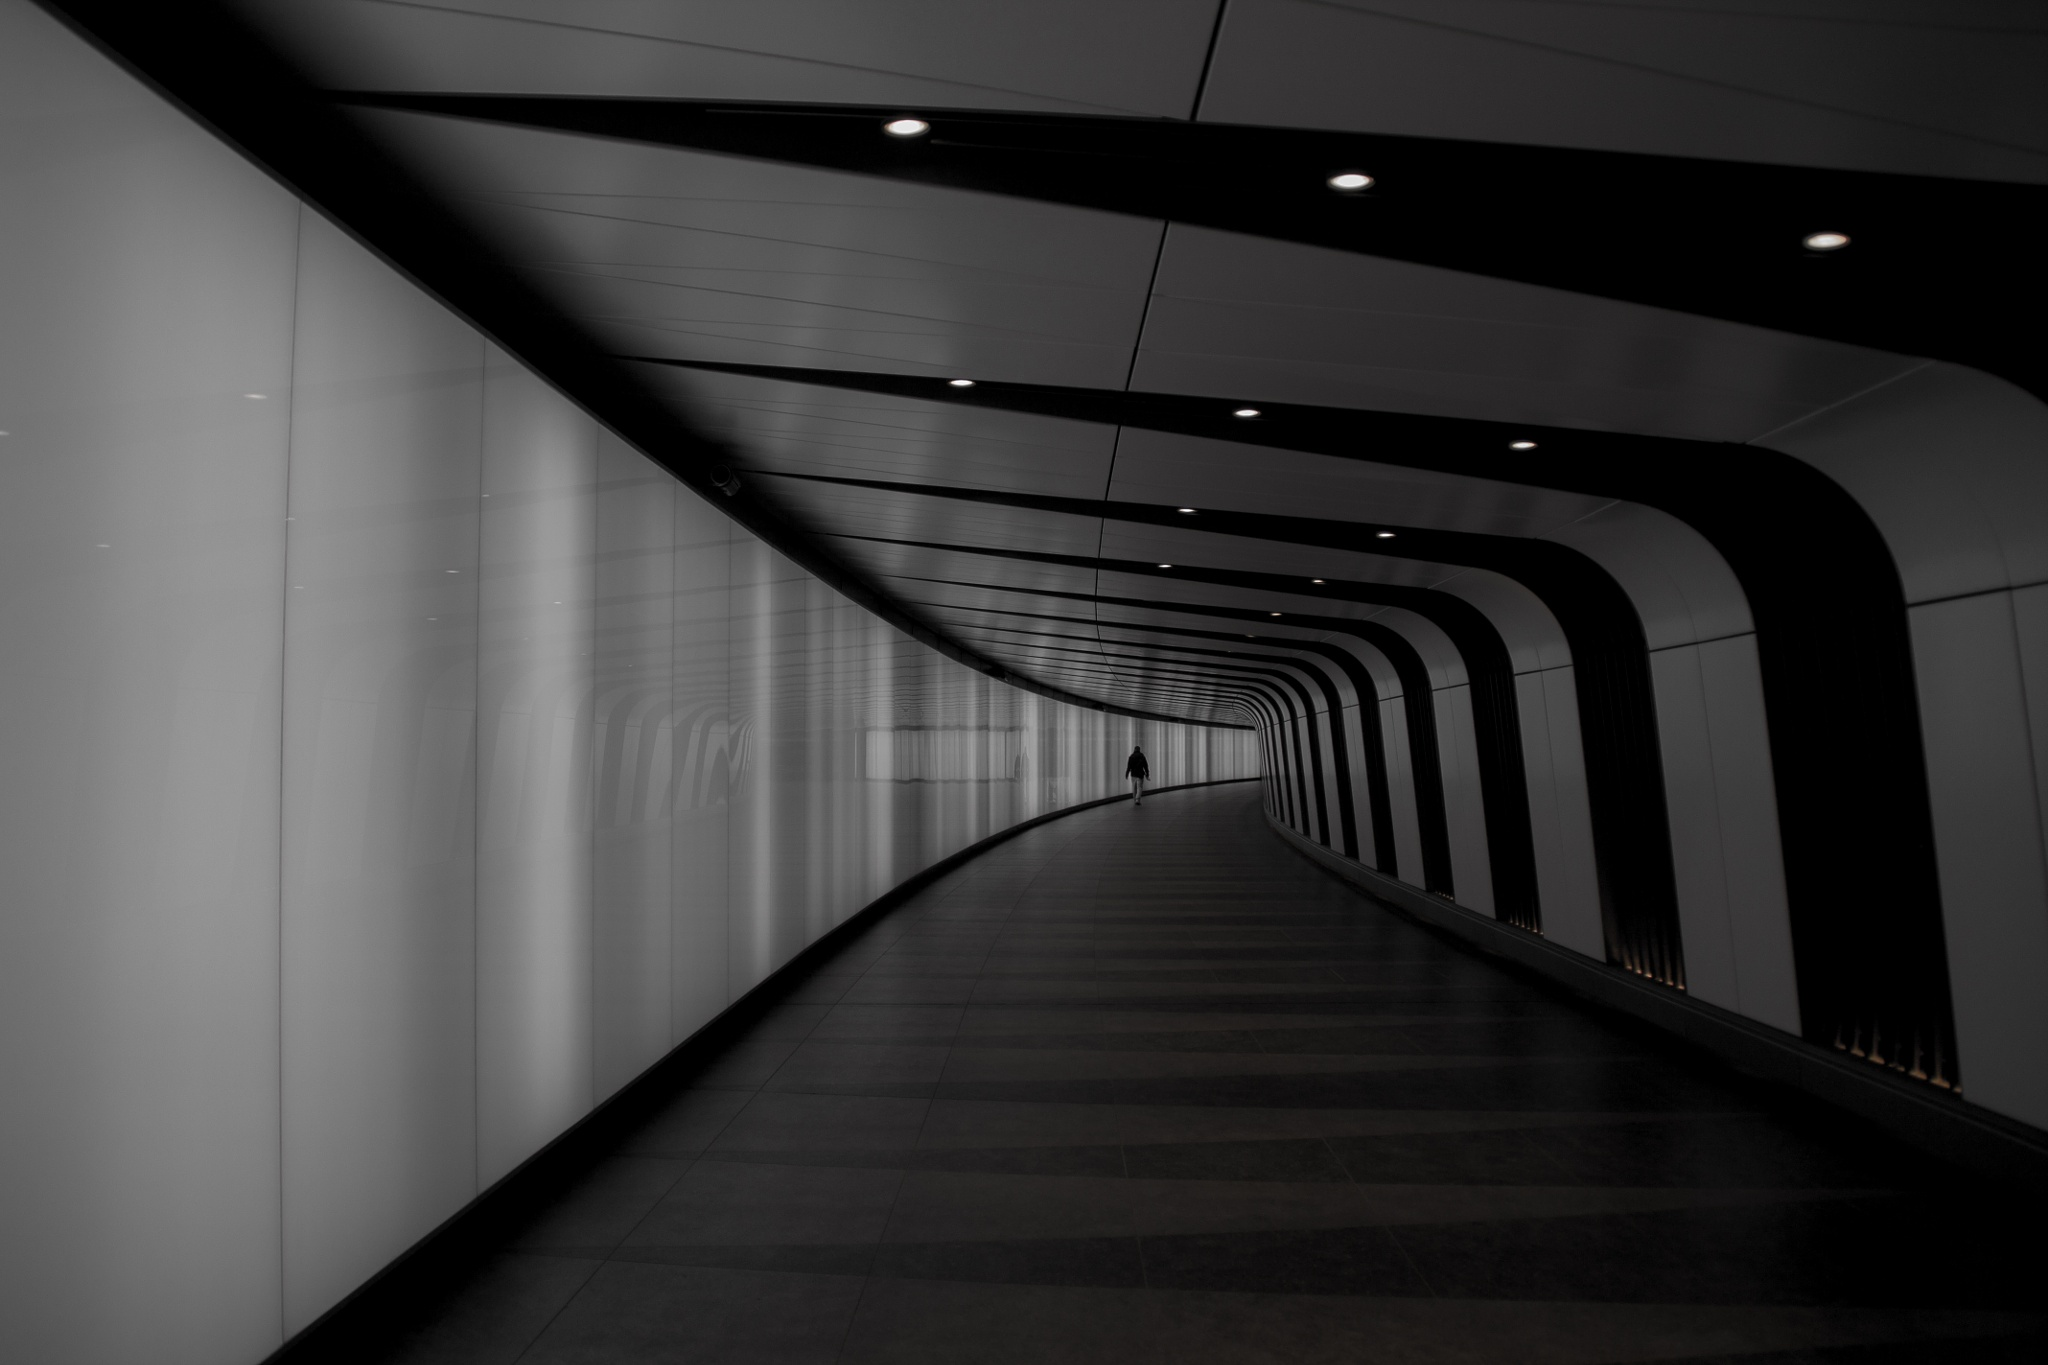 Black and white tunnel by BradBaileyPhotography